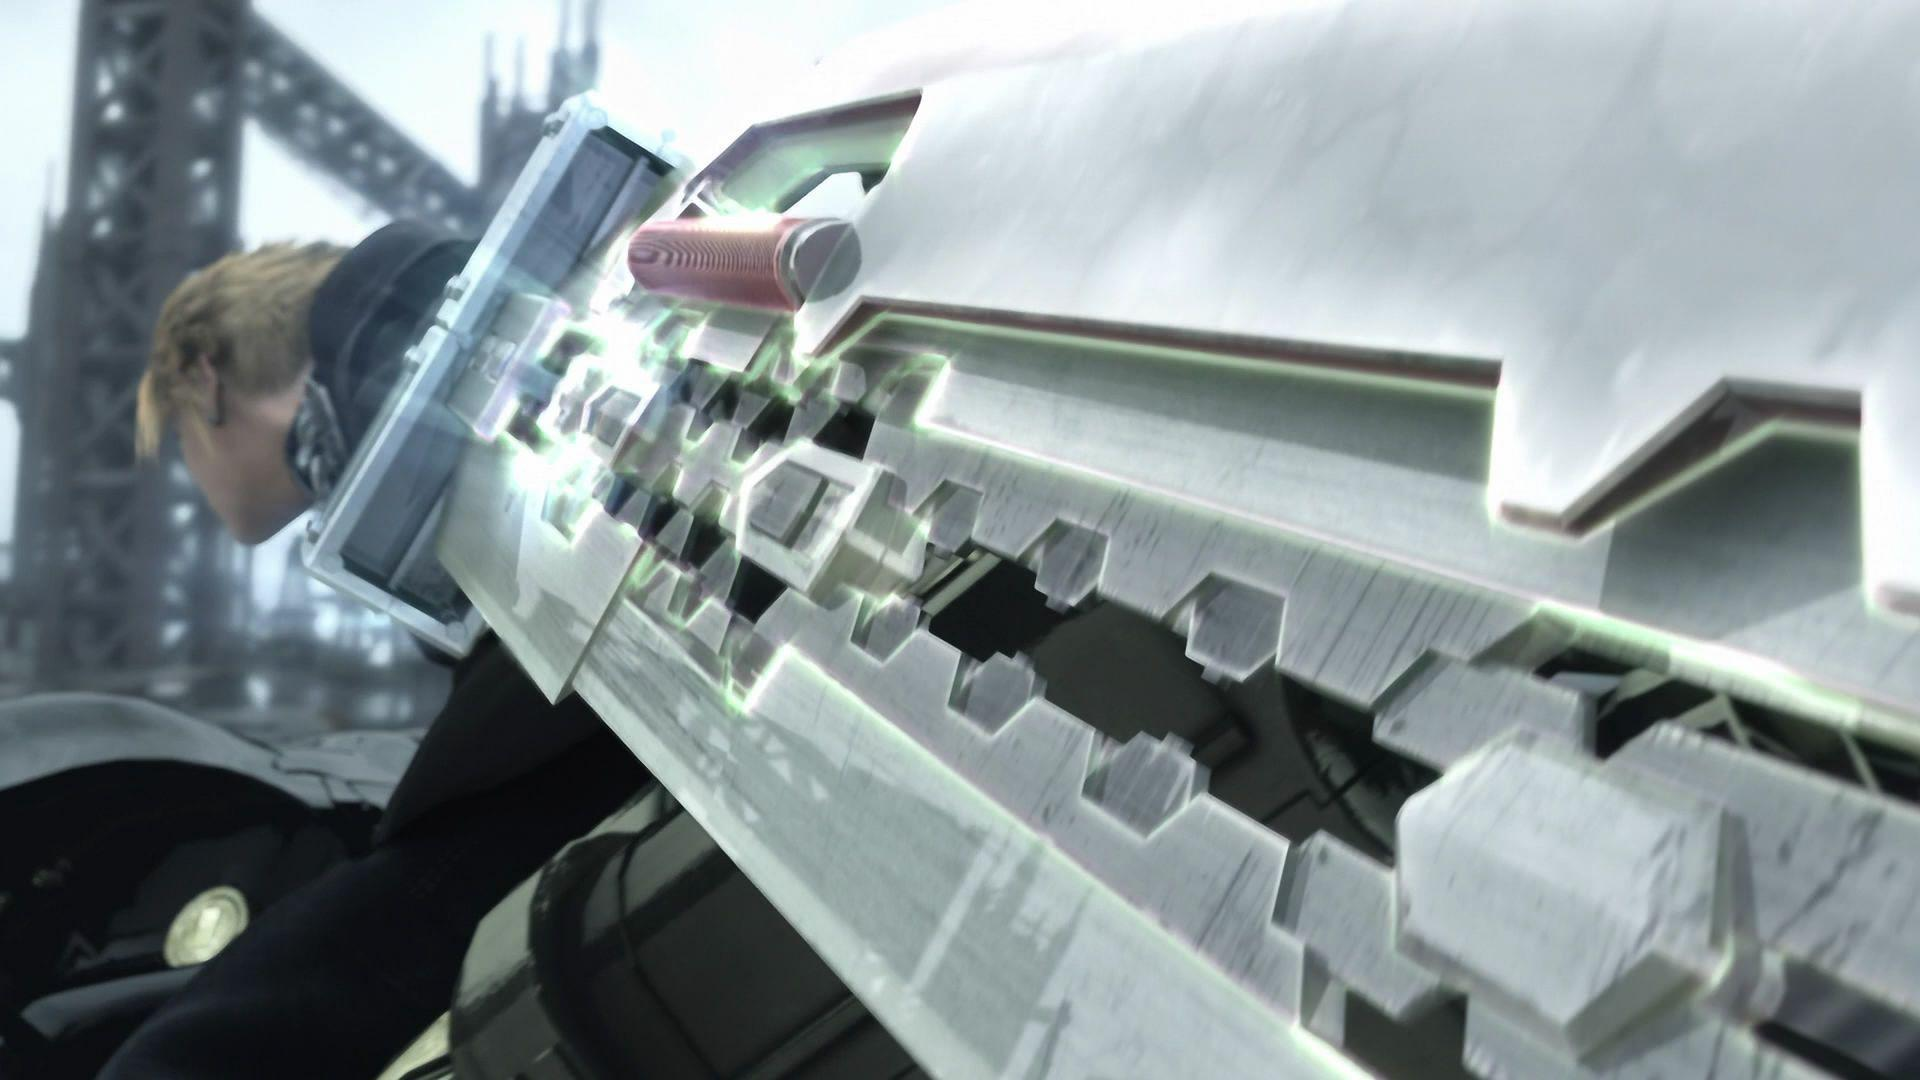 89 final fantasy vii advent children hd wallpapers backgrounds - Wallpapers For Final Fantasy 7 Hd Wallpapers 1920x1080